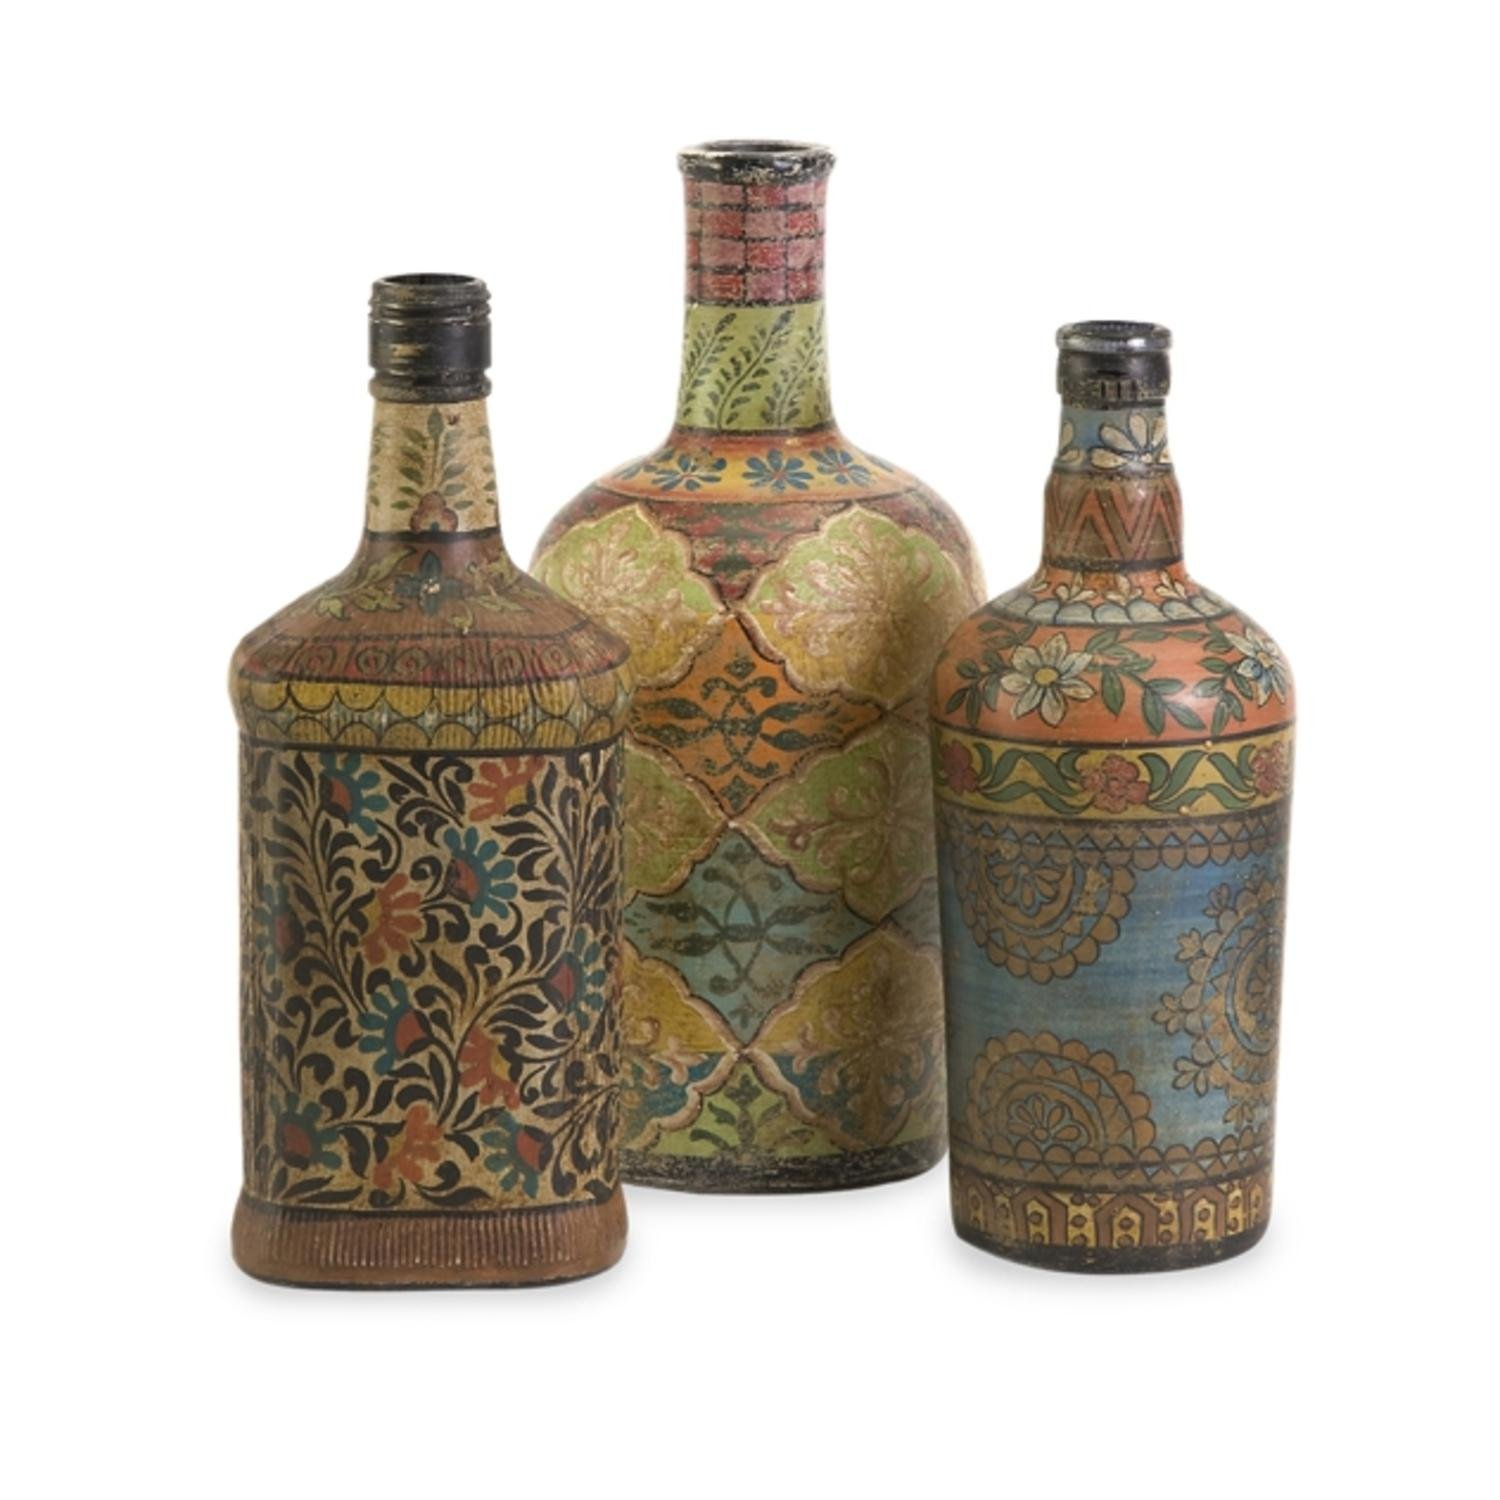 Set of 3 Decorative Rustic Floral Print Bottles by CC Home Furnishings